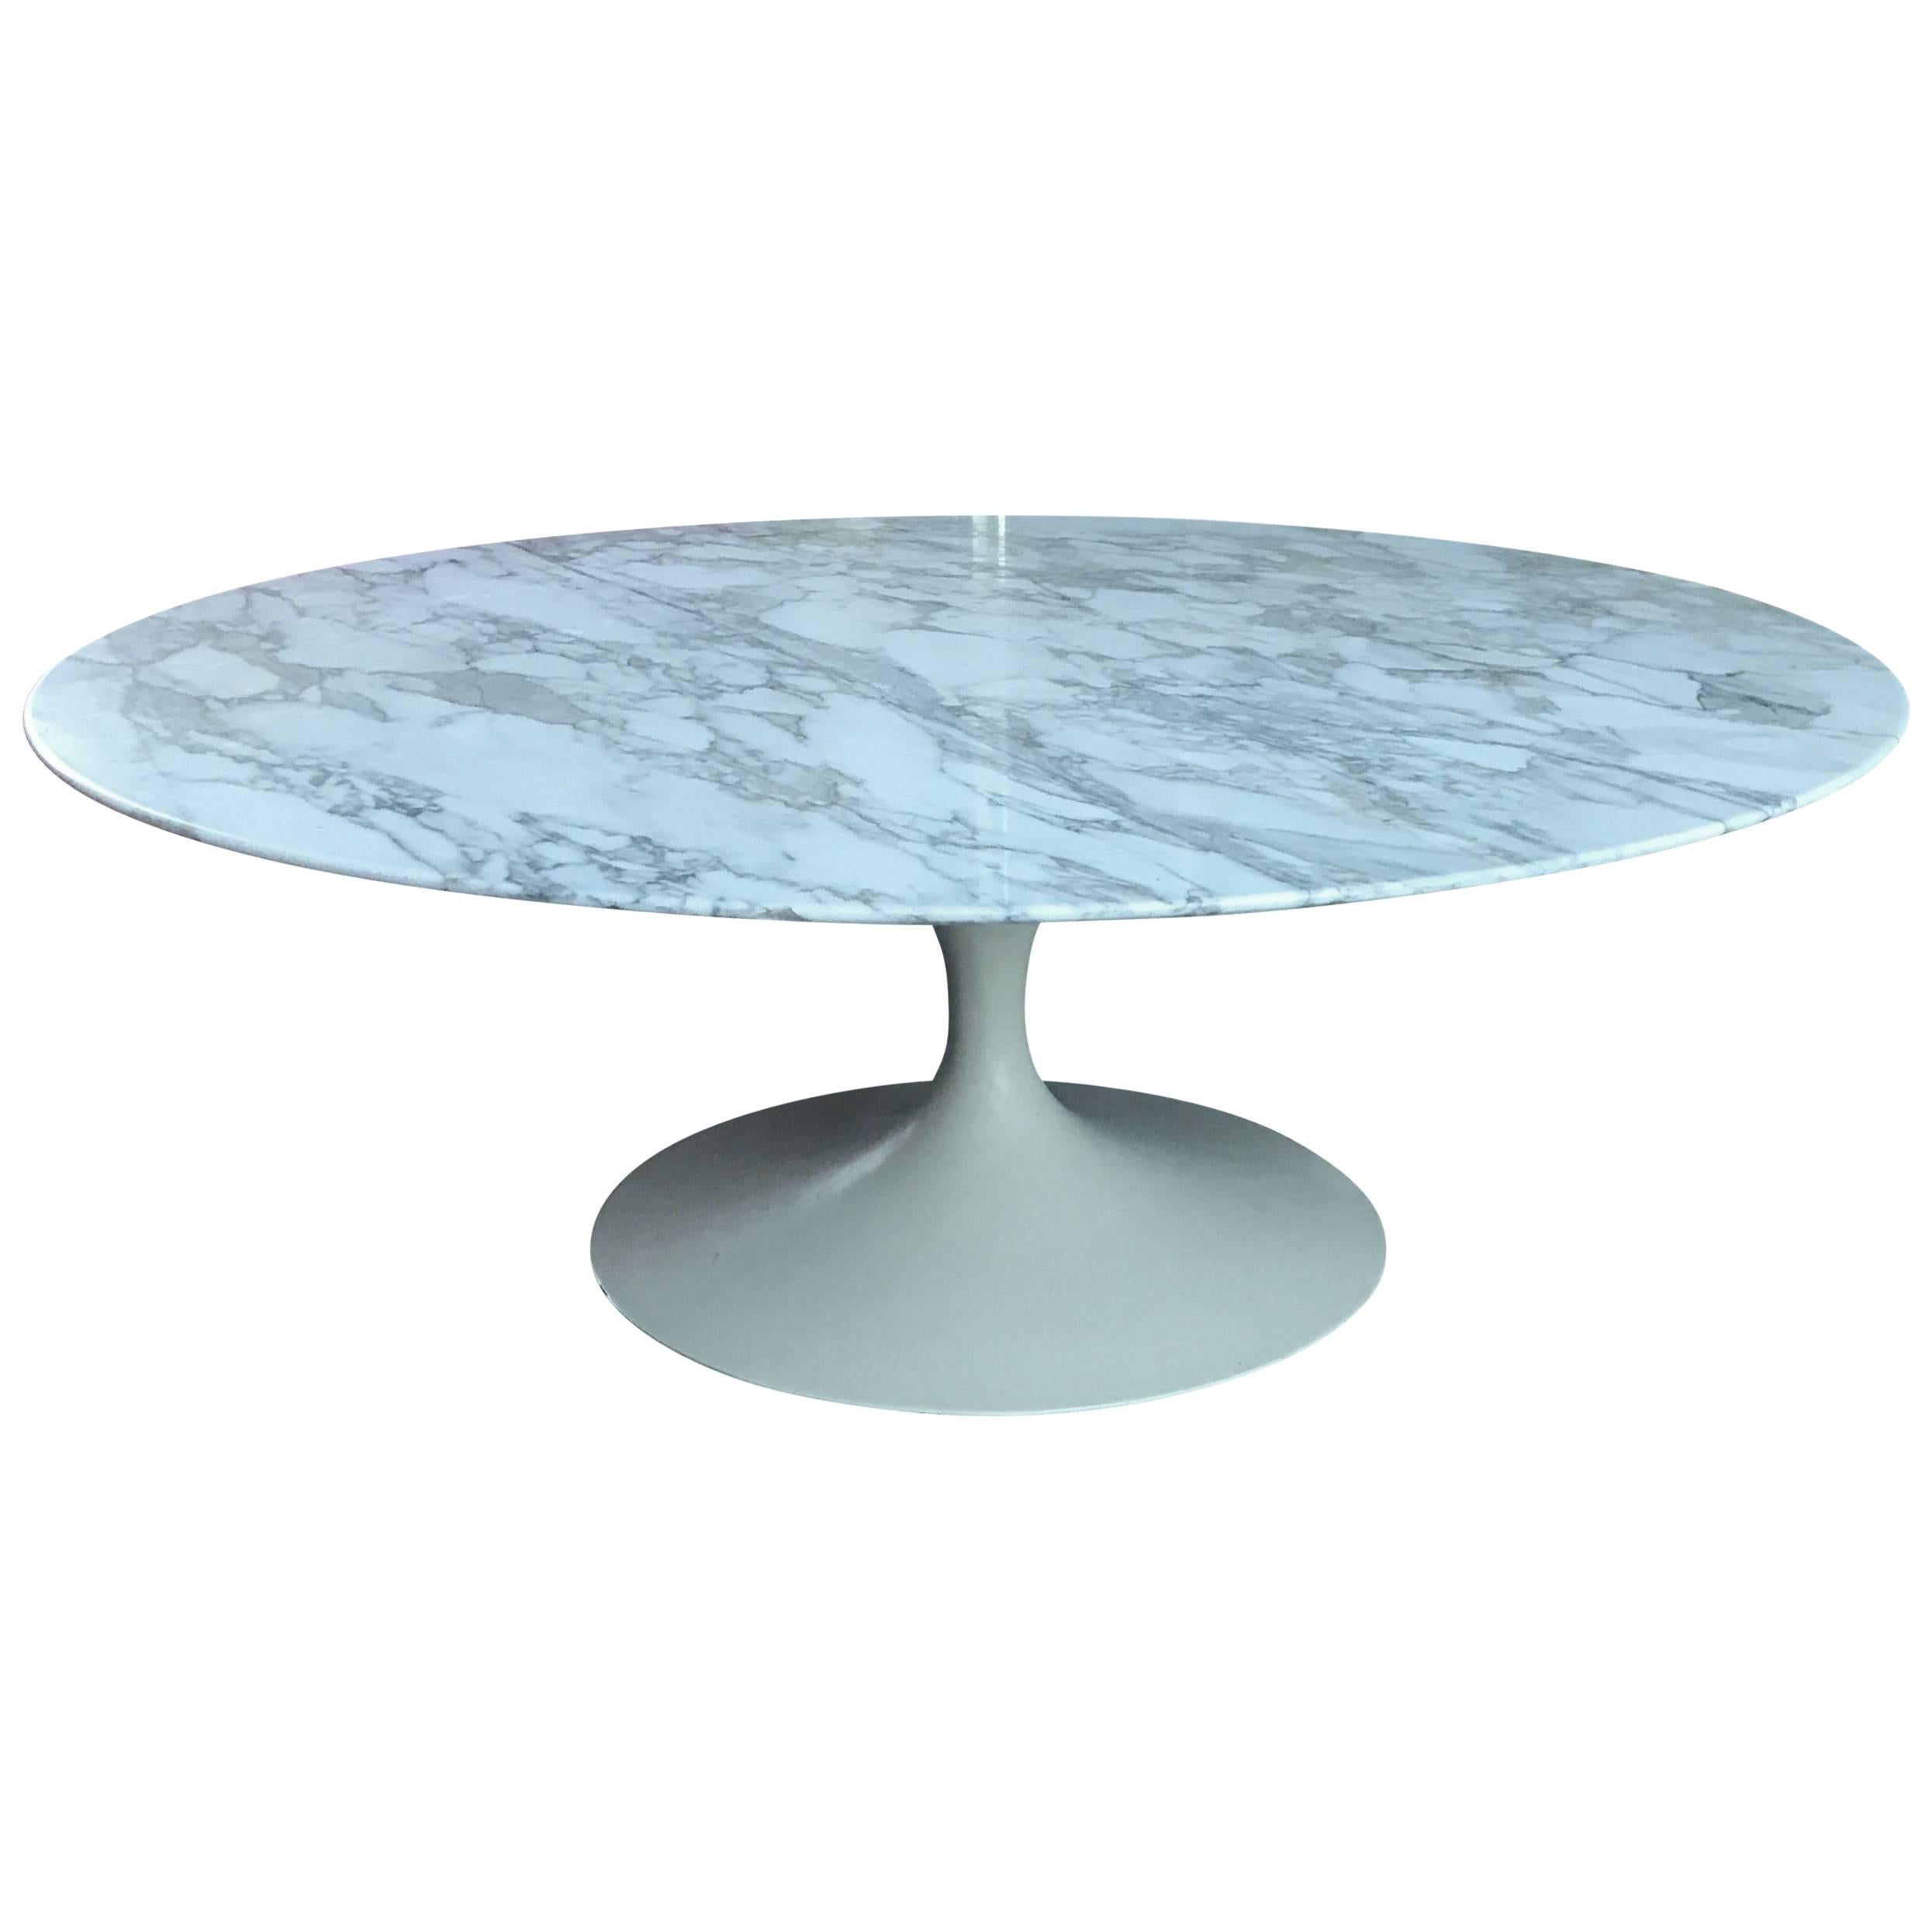 Eero Saarinen Coffee and Cocktail Tables 17 For Sale at 1stdibs